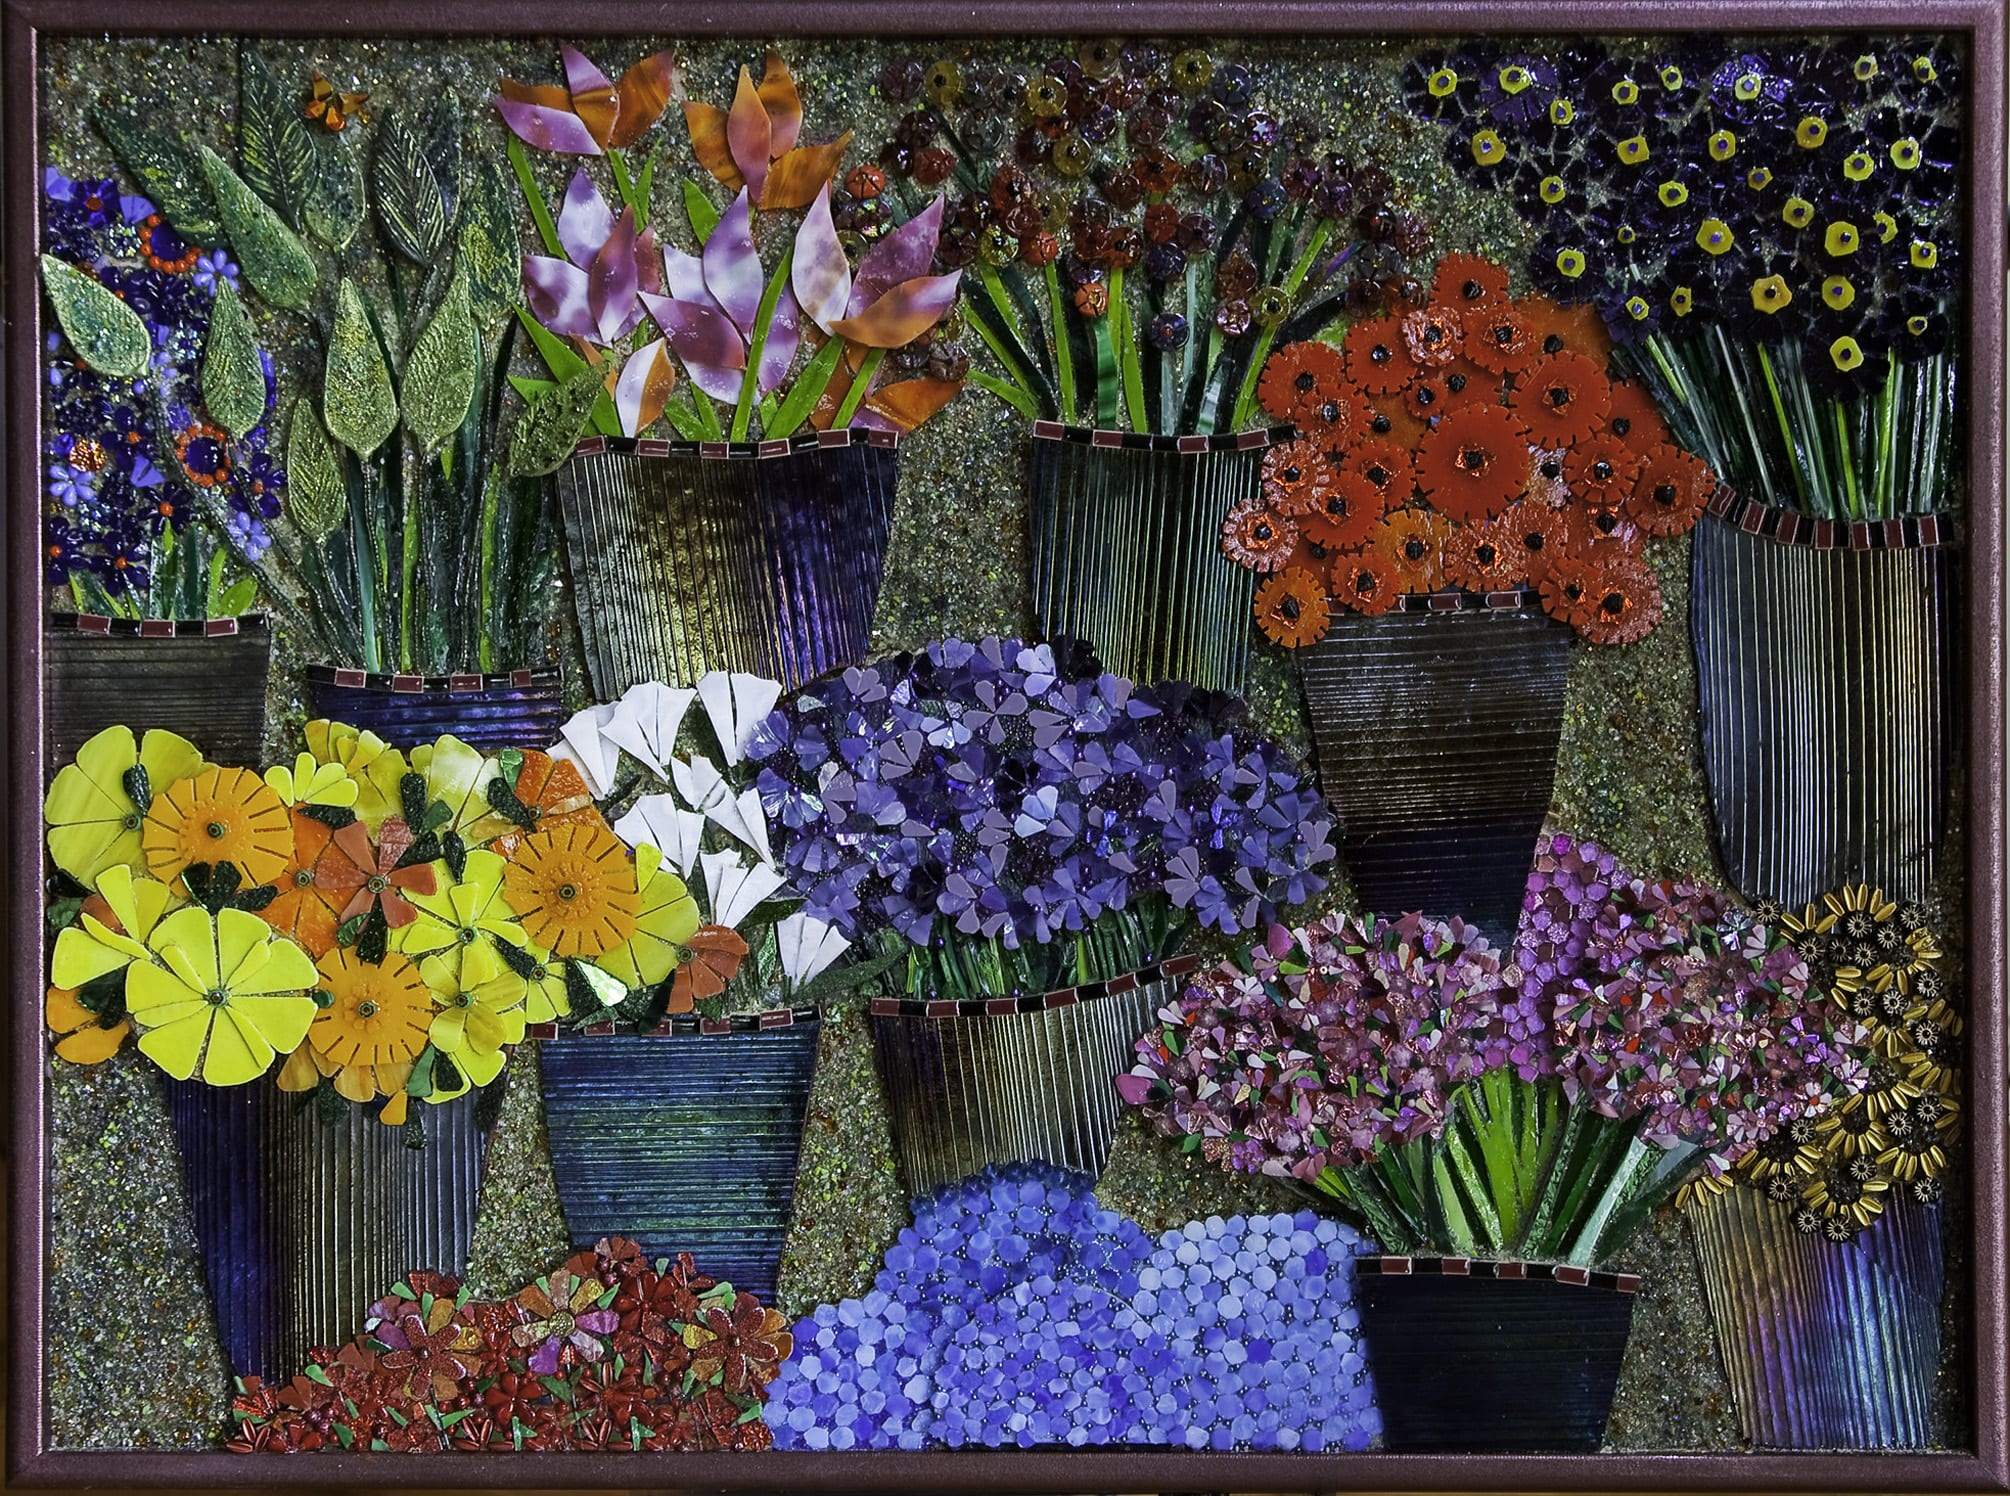 """At the Flower Market"" by Morrine Maltzman"